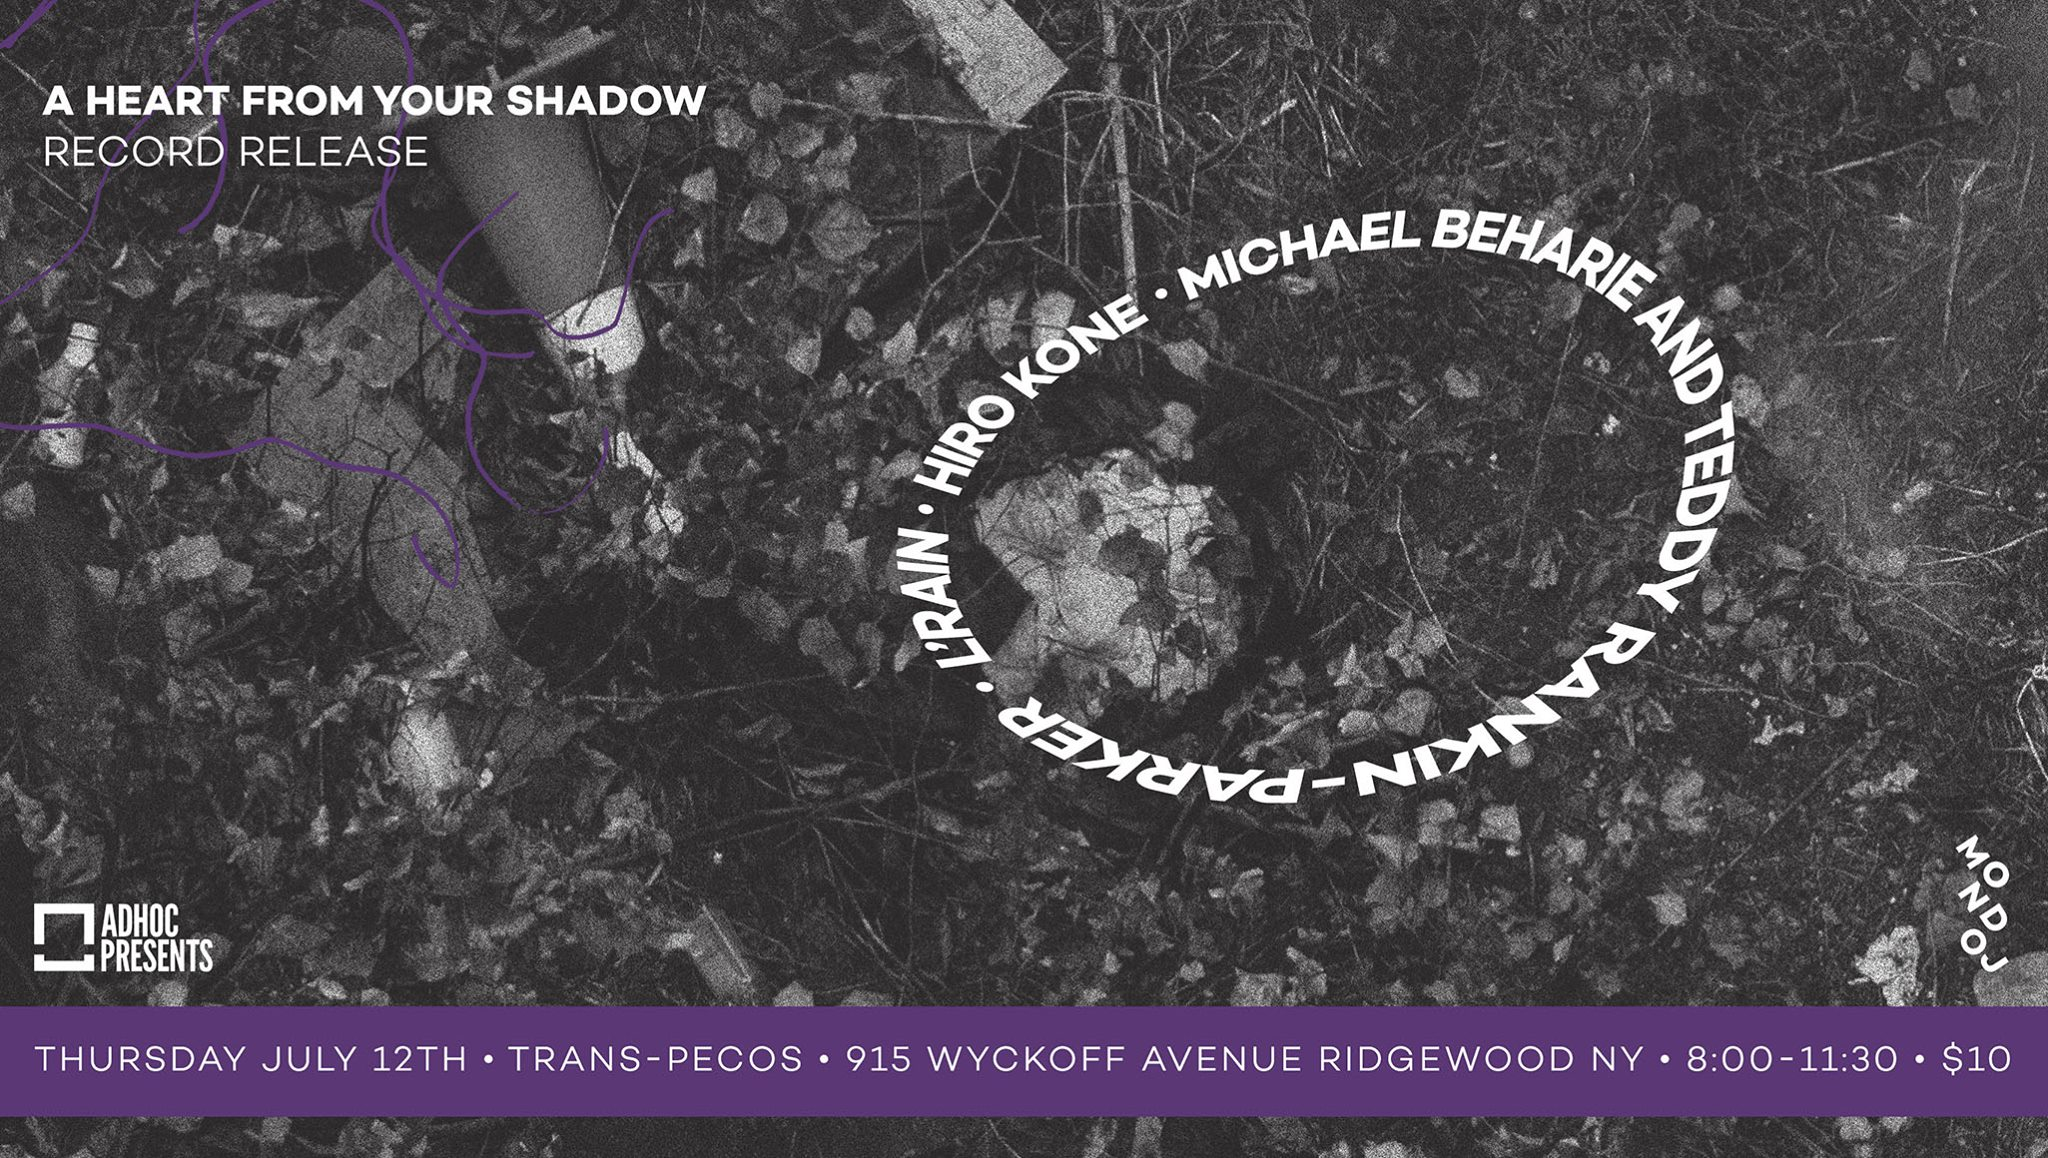 Thursday, July 12th @  Trans-Pecos    AdHoc  Presents  Michael Beharie & Teddy Rankin-Parker (Record Release) Hiro Kone (  http://hirokone.com  )  L'Rain   TIX:  https://ticketf.ly/2IWaEXT   | Trans-Pecos | 915 Wyckoff Ave @ Weirfield | Ridgewood, Queens L-Halsey, LM-Myrtle Wyckoff | $10 | all ages  Check out our calendar and sign up for our mailing list  http://adhocpresents.com/